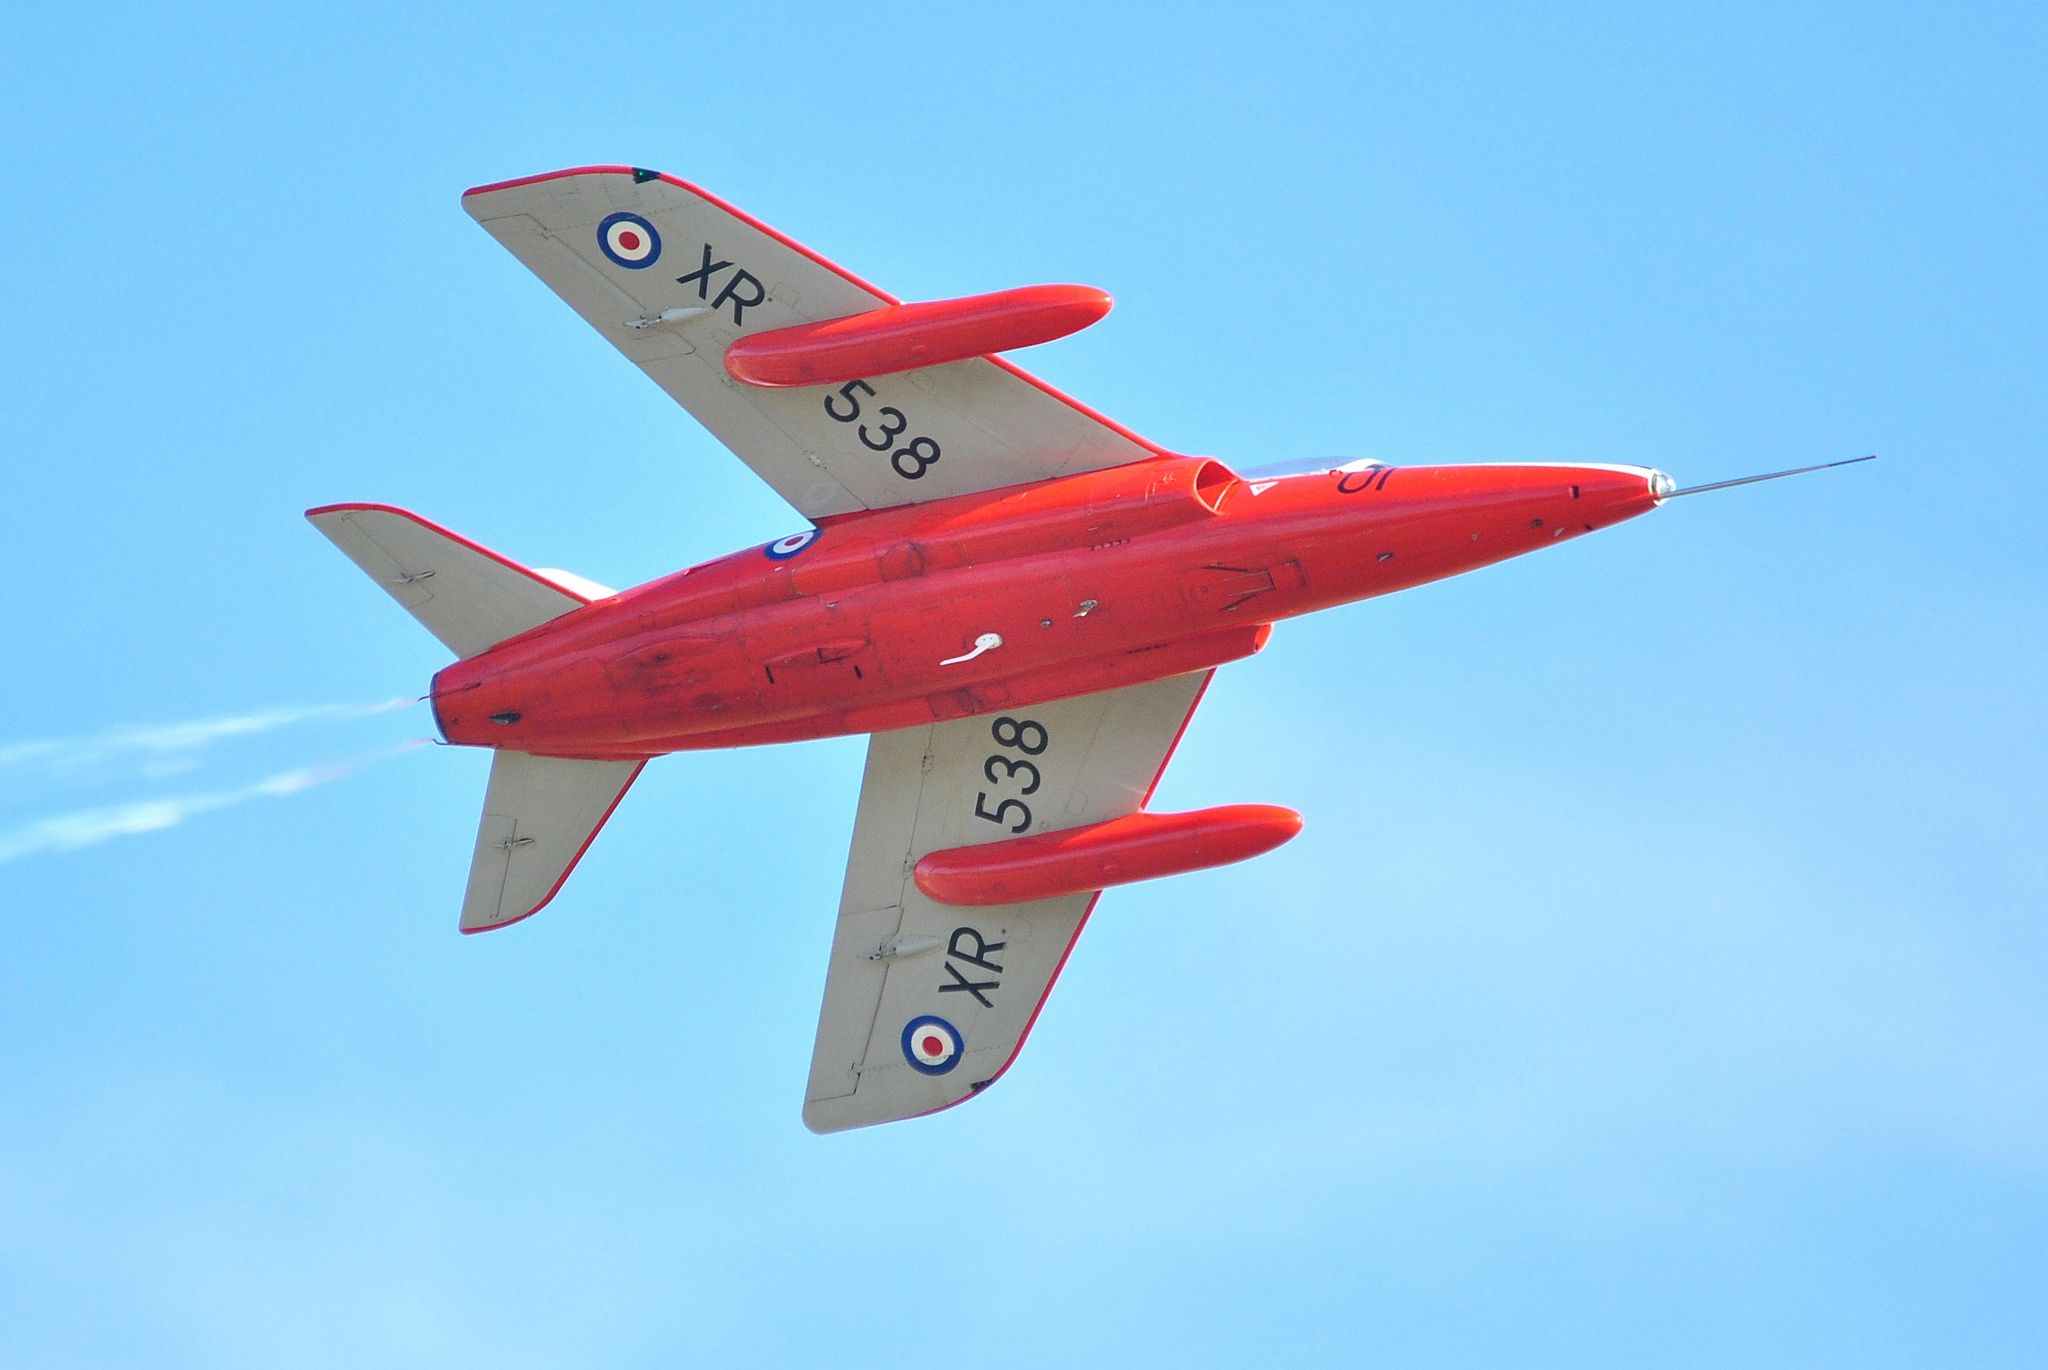 In Britain, when pursuing a fast jet career, pilots were trained for 70 hours on the Gnat.